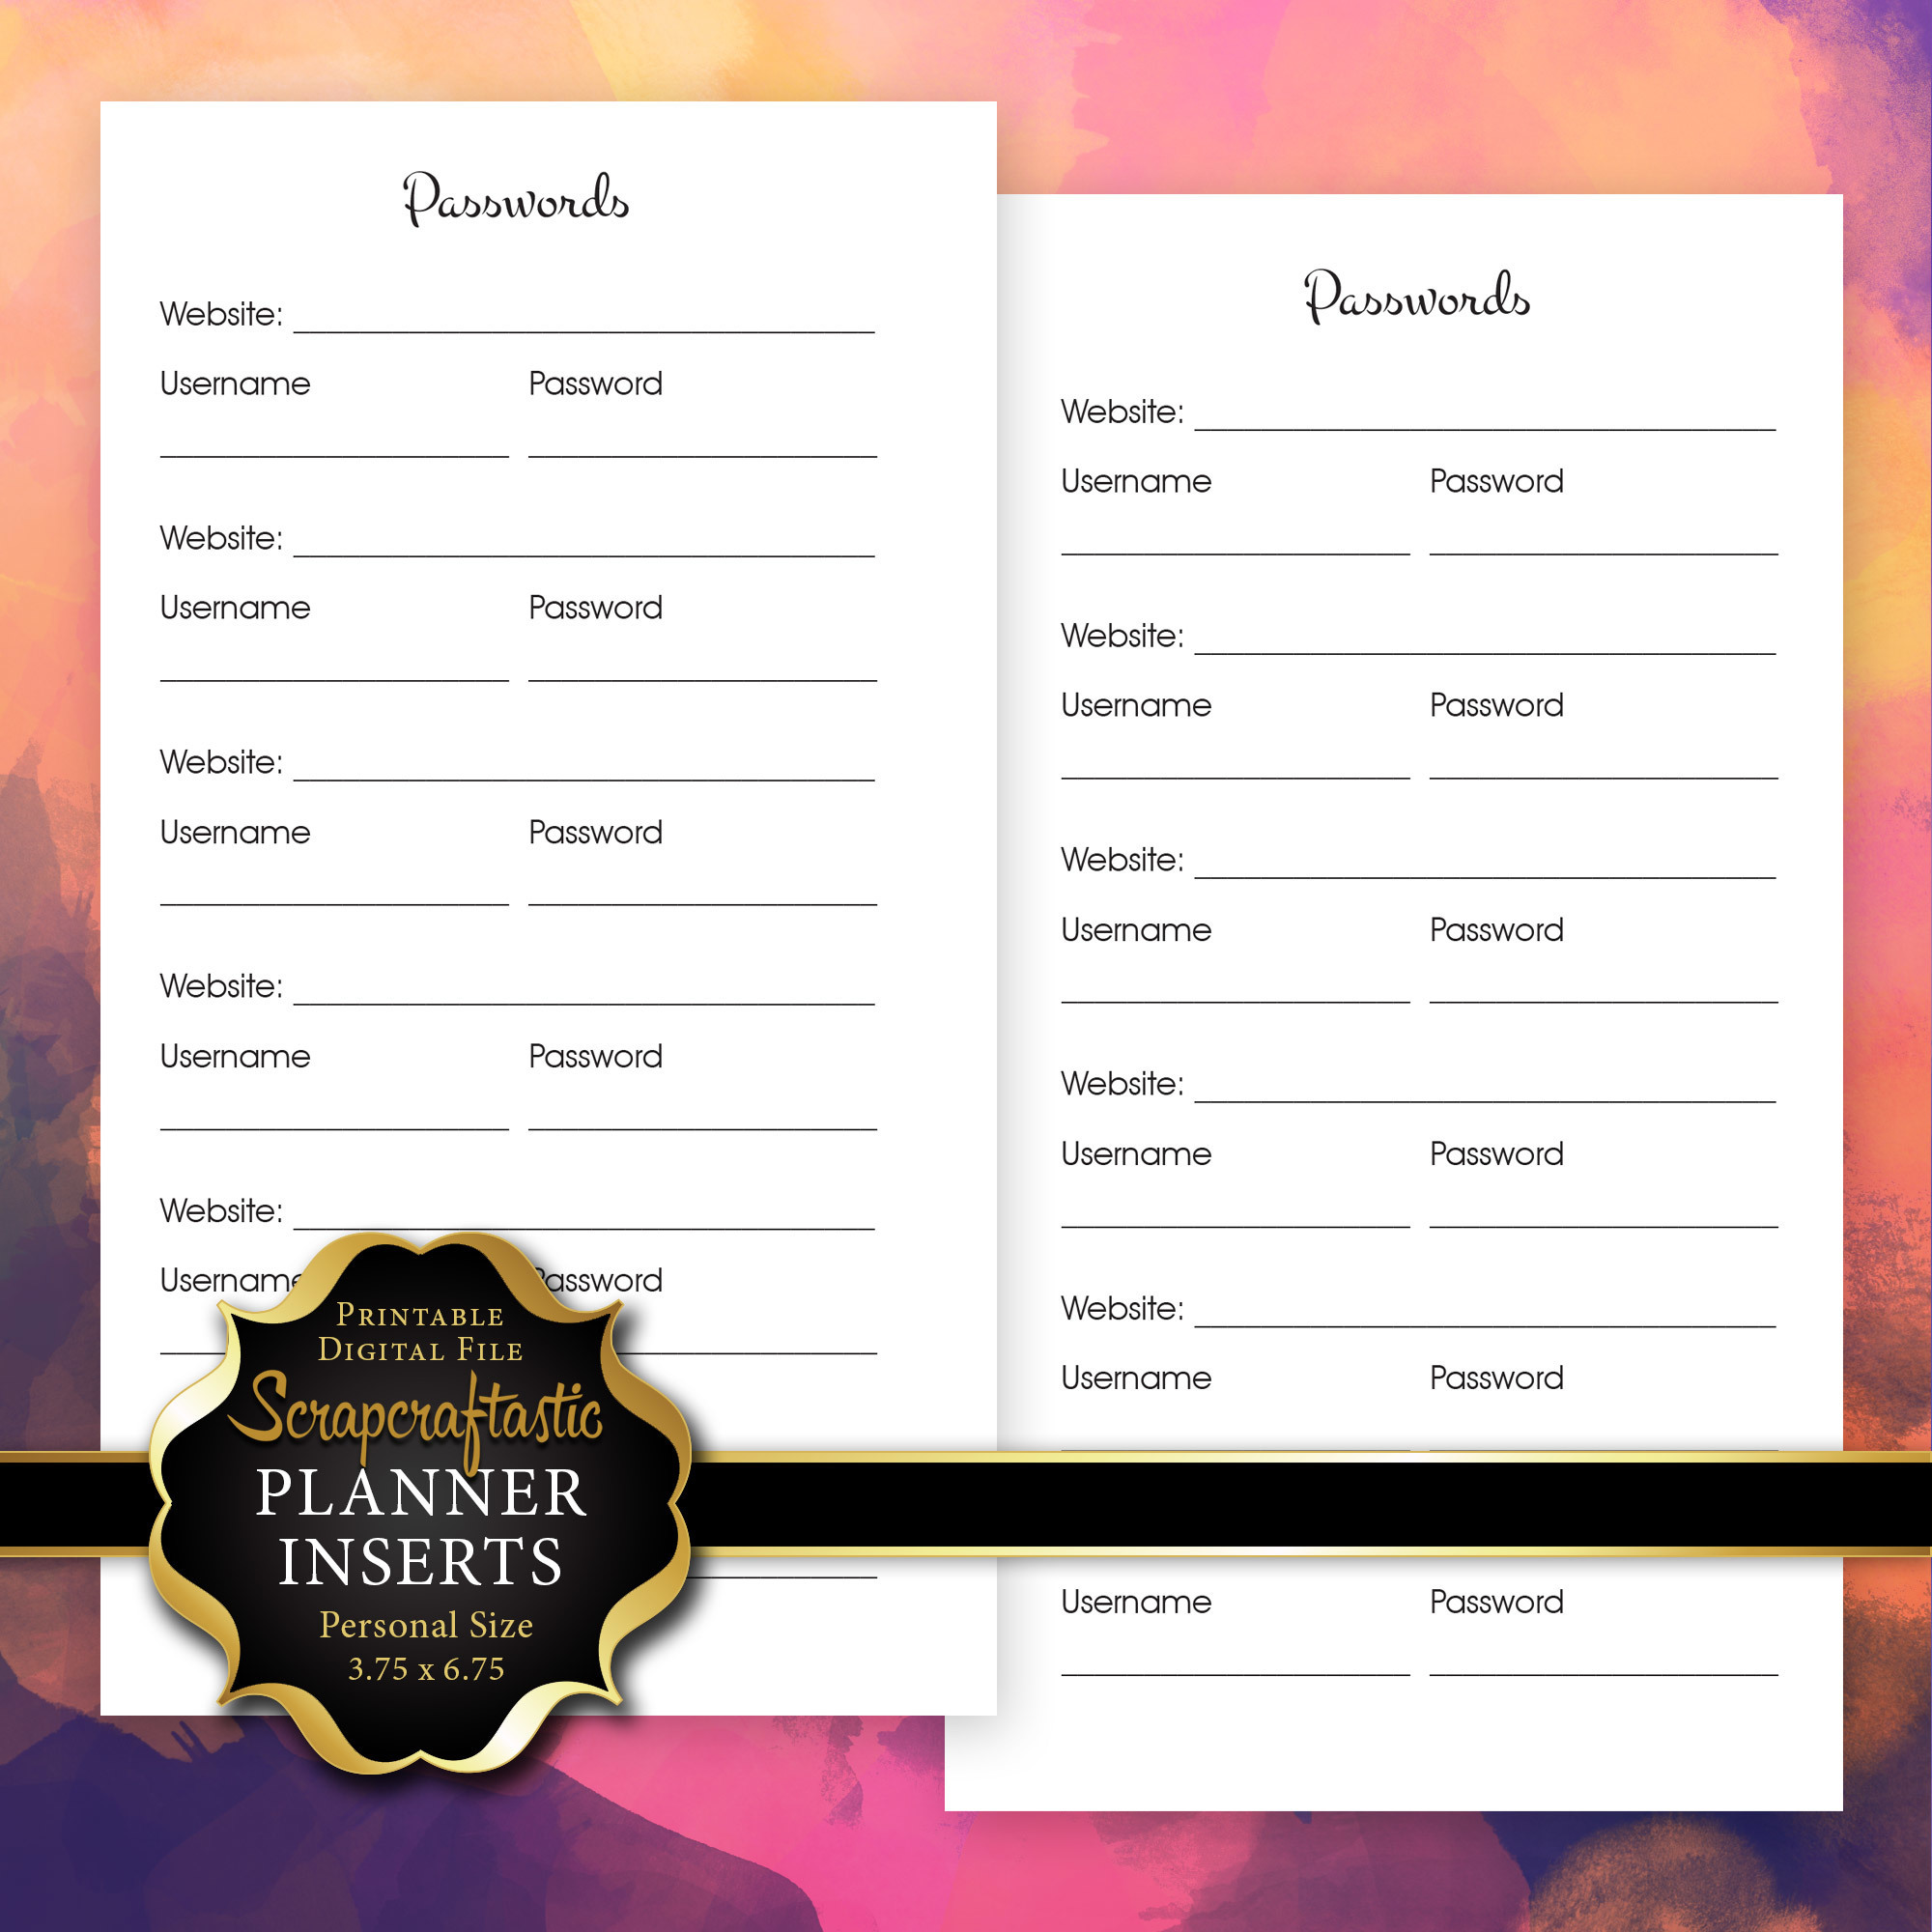 Password Log Planner Insert | Personal Size Planner Filofax Kikki K ColorCrush 00232